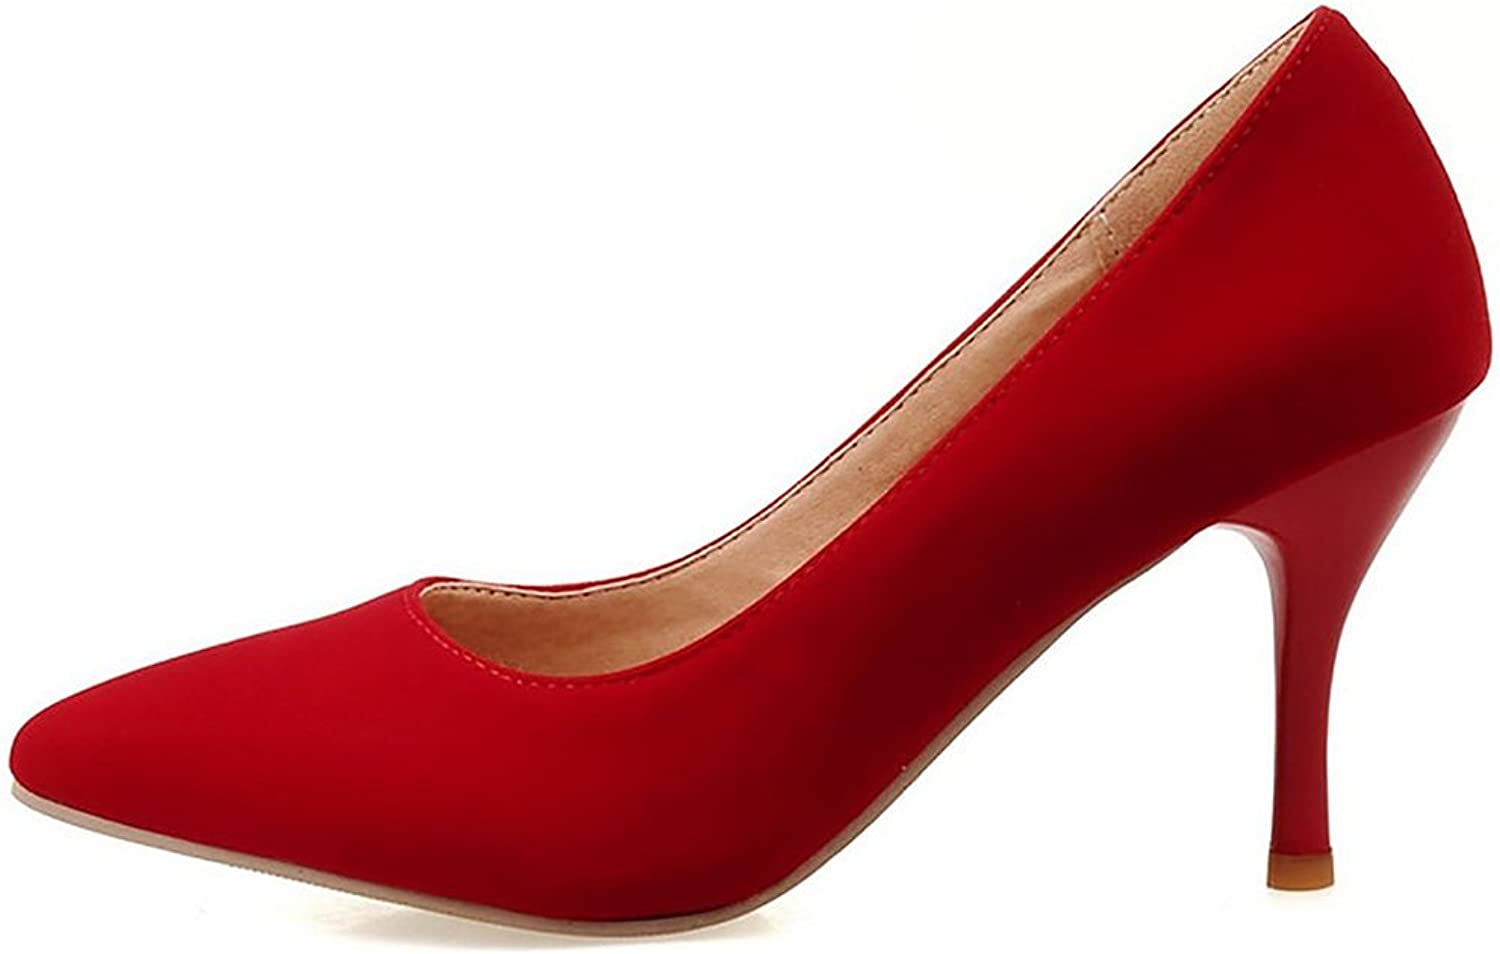 COOLCEPT Women High Heel Pumps Pointed Toe Solid color Slip-On Stiletto Sude shoes Formal Footwear